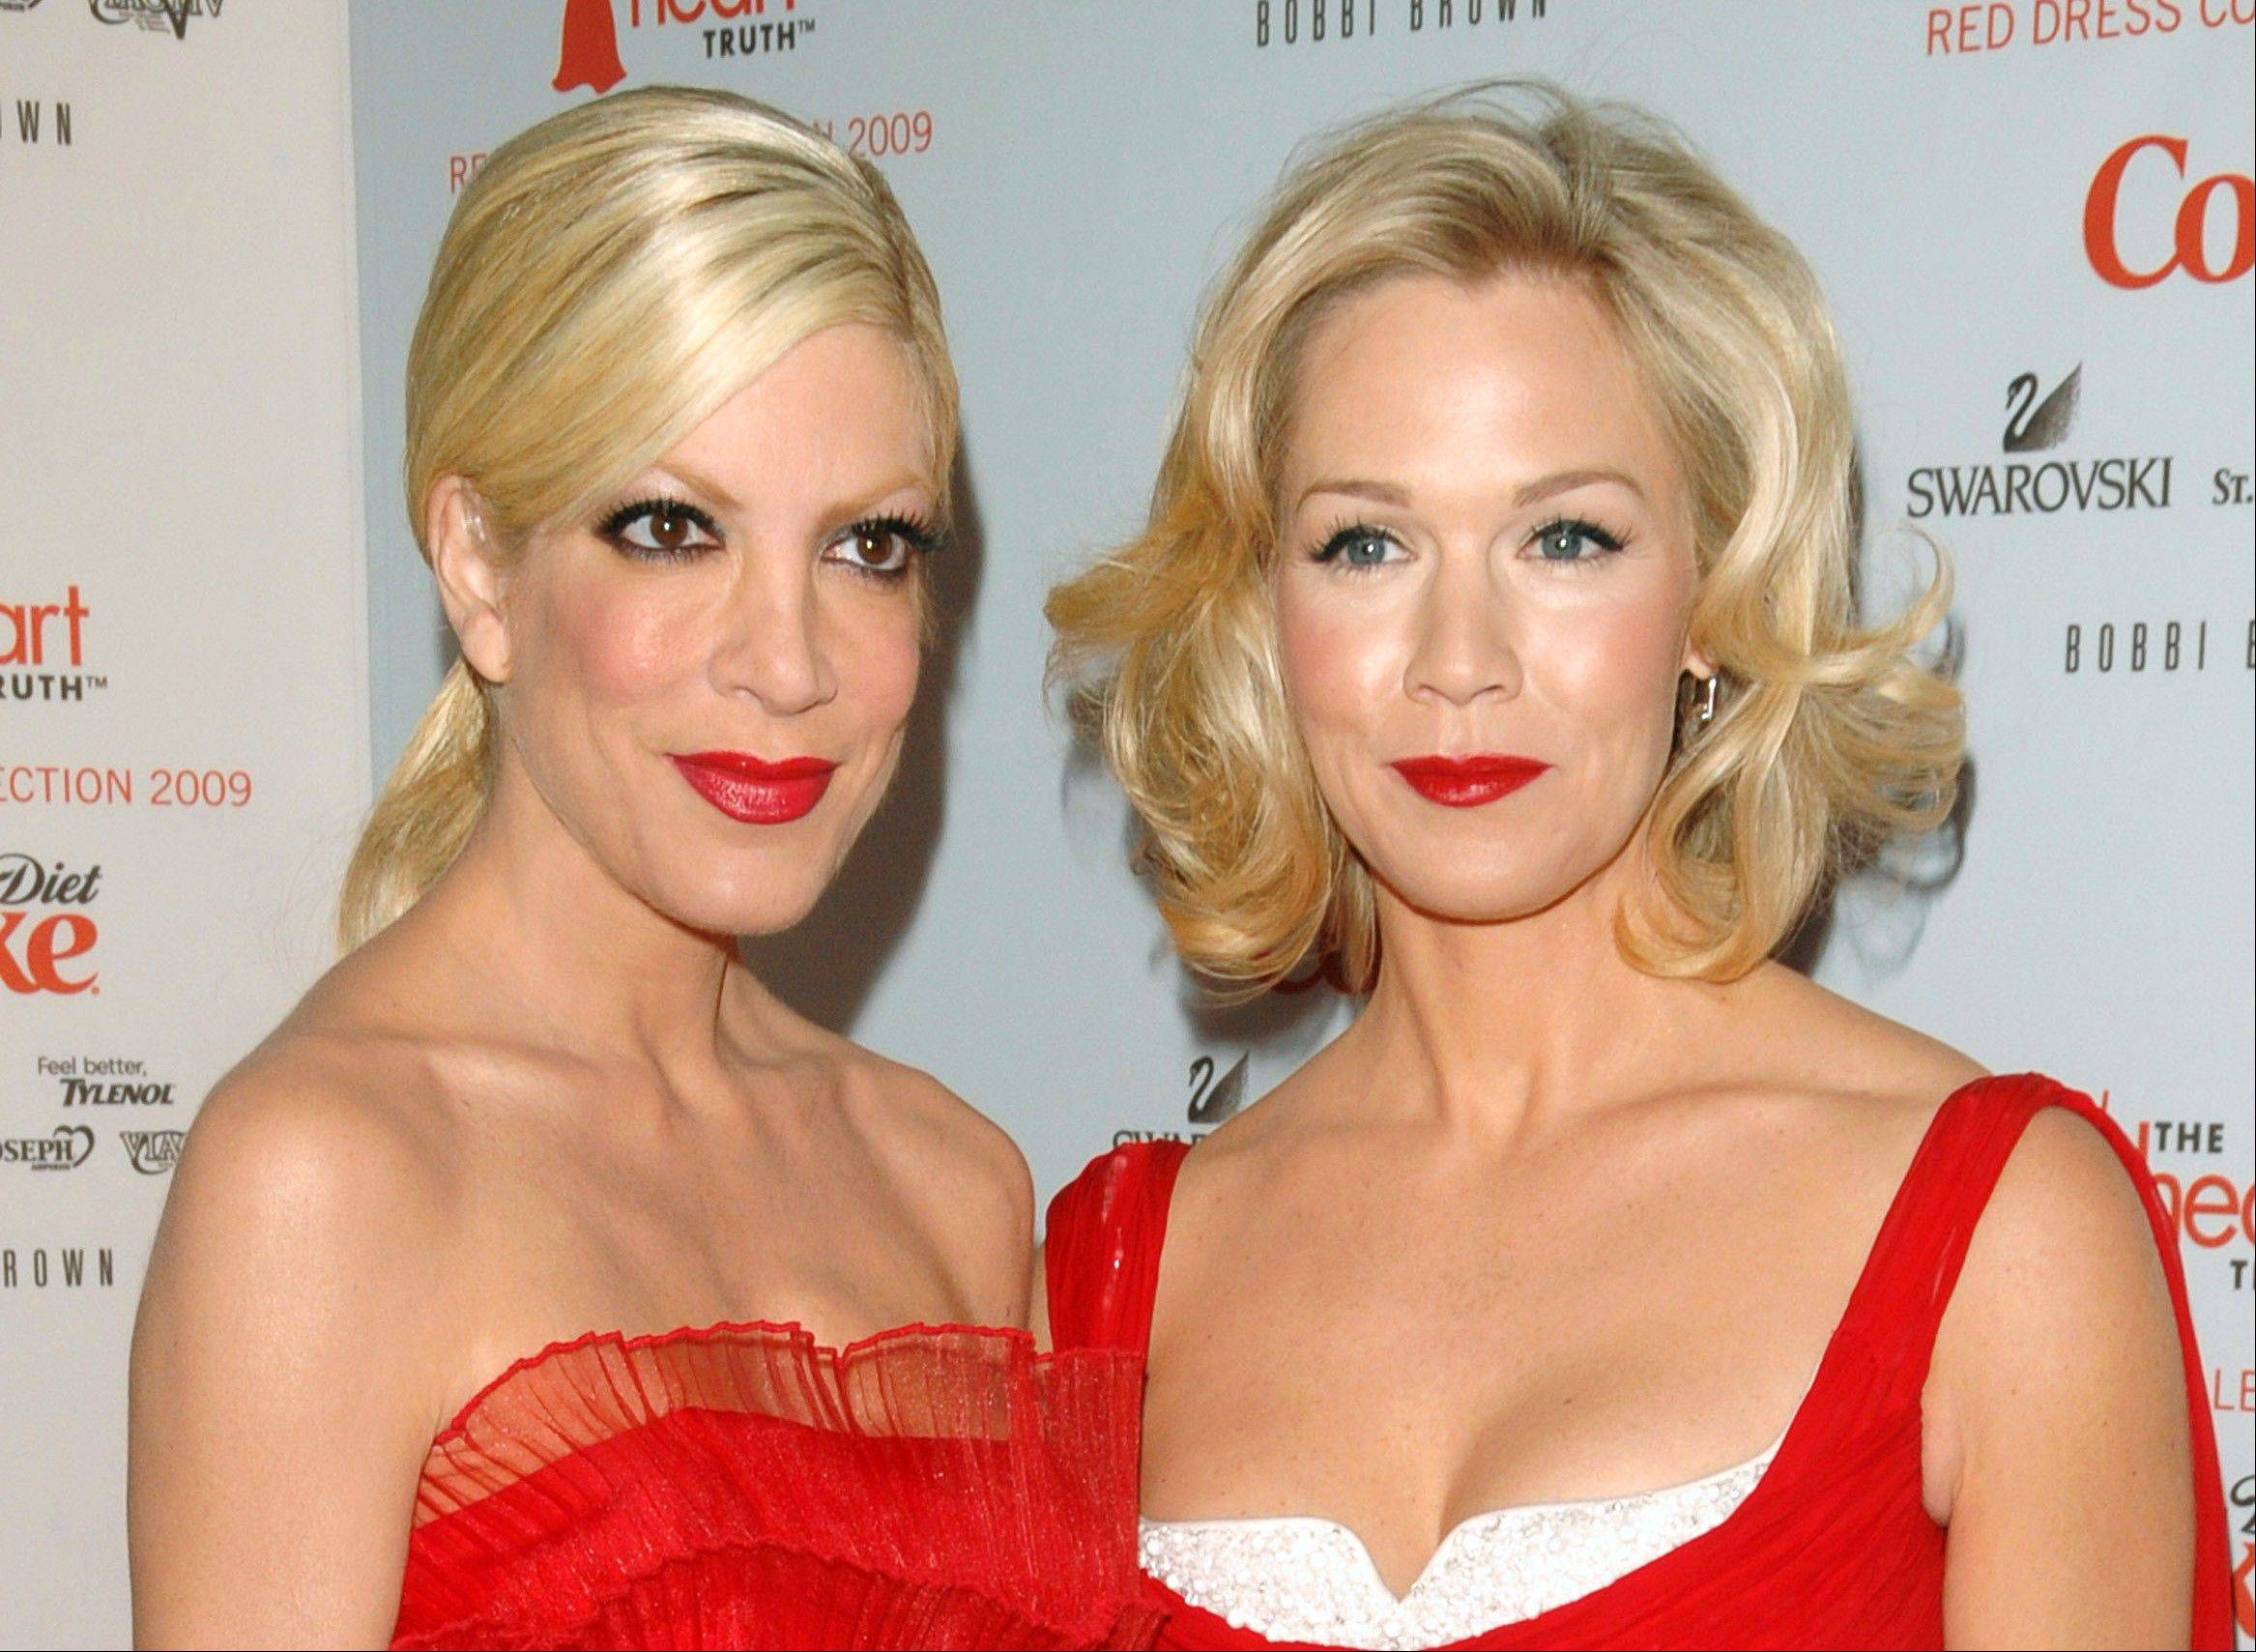 This Feb. 13, 2009 file photo shows actors Tori Spelling, left, and Jennie Garth at the Heart Truth�s Red Dress collection during Fashion Week in New York. The former �Beverly Hills, 90210� stars are reuniting. The actresses will co-star and executive produce the new ABC Family series �Mystery Girls.� In the series, Spelling and Garth play Holly and Charlie, who were on a crime-solving series in the 90�s that was the highest-rated show on TV. Spelling�s Holly is looking to reignite her fame and opens a detective agency. She persuades Charlie, now a suburban mom to help. �Mystery Girls� is set to shoot in November.